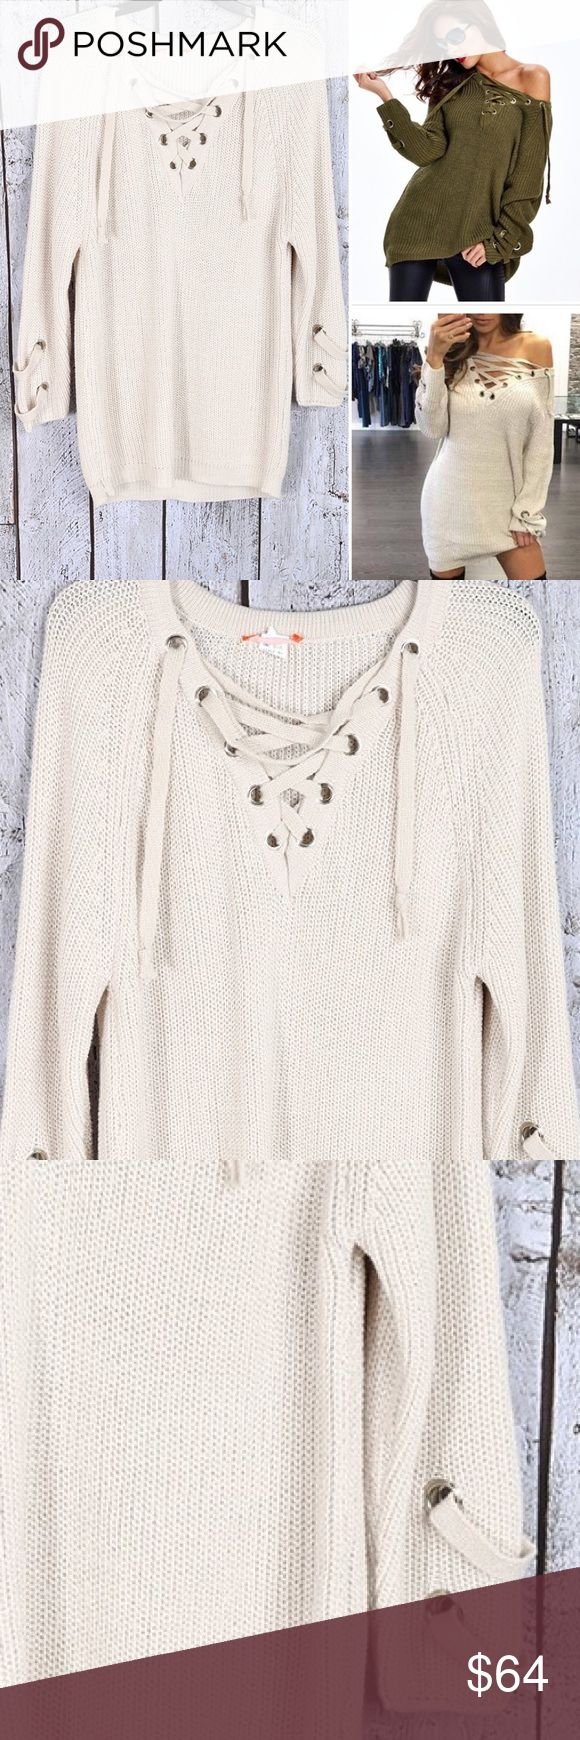 1DAY SALE LUXE Light Stone Lace Up Knit Sweater LUXE Light Stone Beige Lace Up Knit Sweater NWT ❌PRICE FIRM ❌HOTTEST SWEATER OF THE SEASON! Light Stone (like a really light beige or light cream) Lace Up Knit Ribbed V Neck Grommet Sweater. Actual color on pictures 2 & 3. S/M size 0-6 M/L= size 8-10   look @ my closet for great dealstradesreturns-ask Q's ❤️PRICE FIRM unless bundled❤️HIGH QUALITY fast shipping❌Low ballers will be ignored BOUTIQUE Sweaters